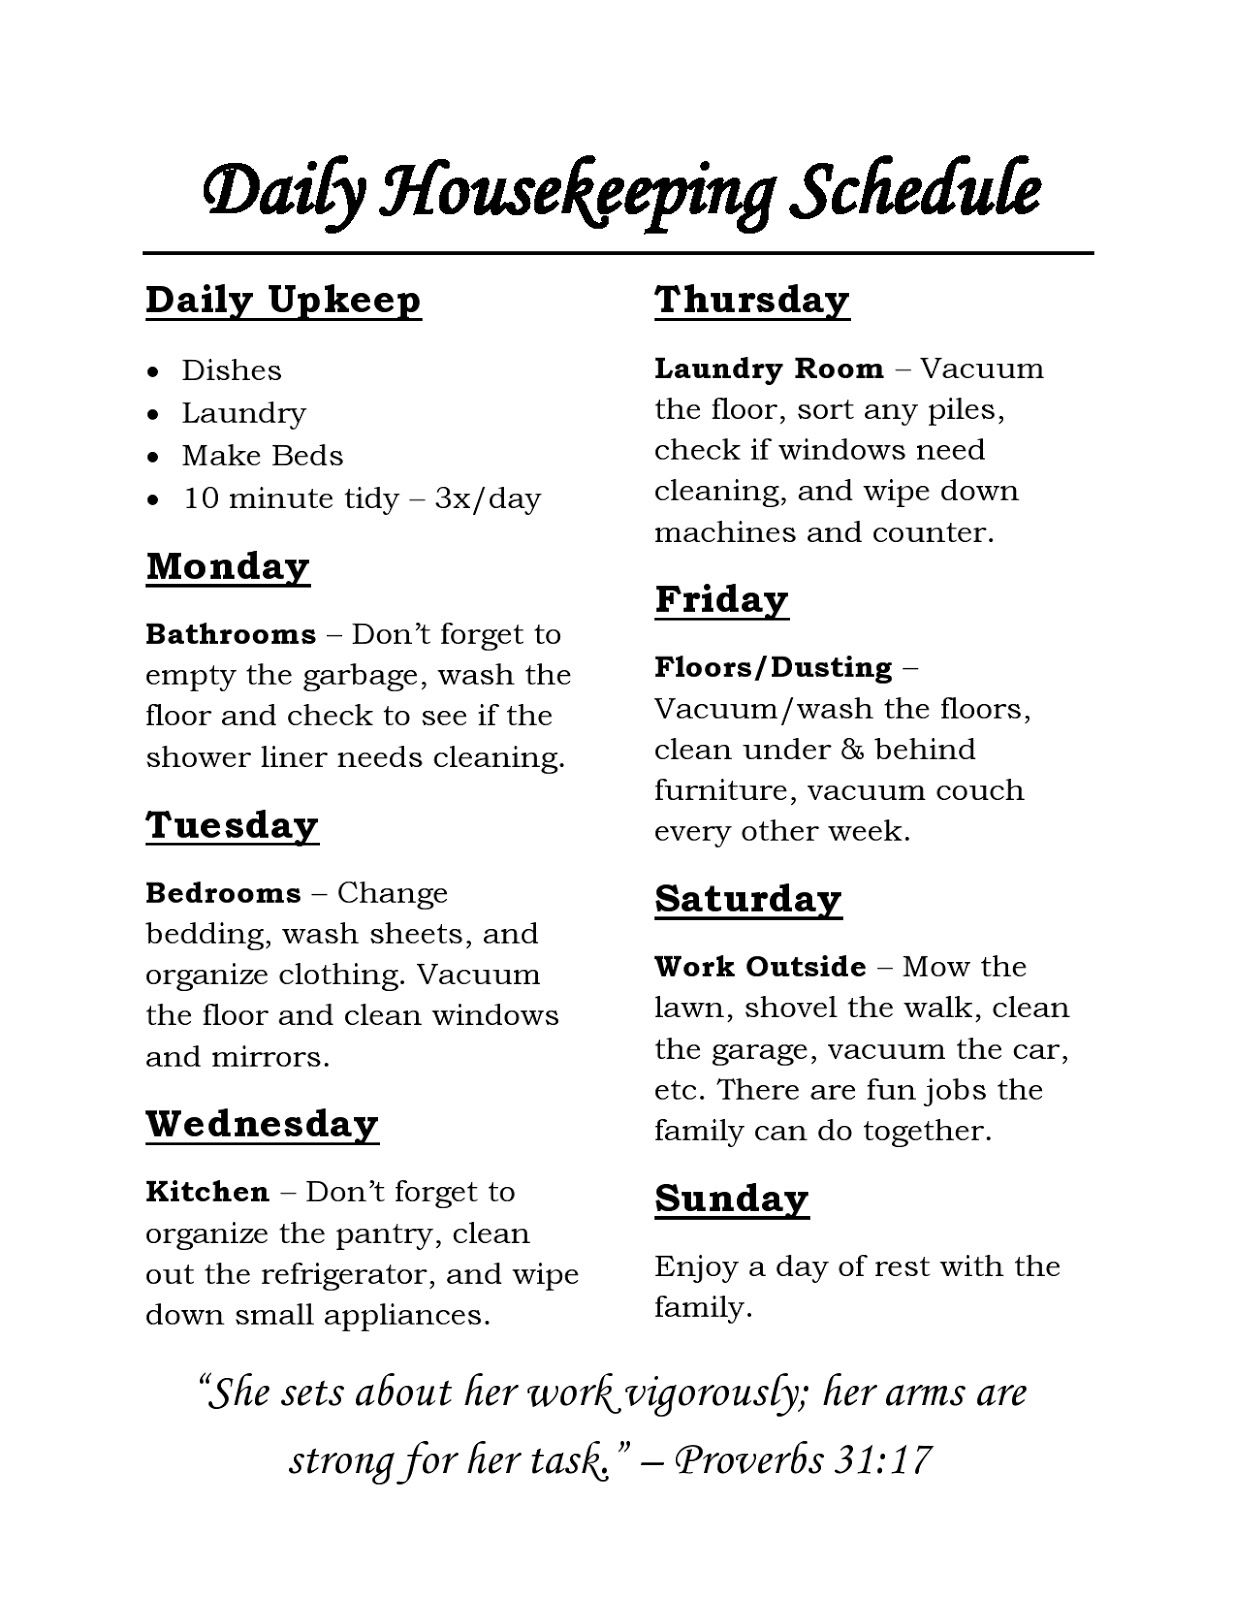 housekeeping schedule  chores for each day of the week and